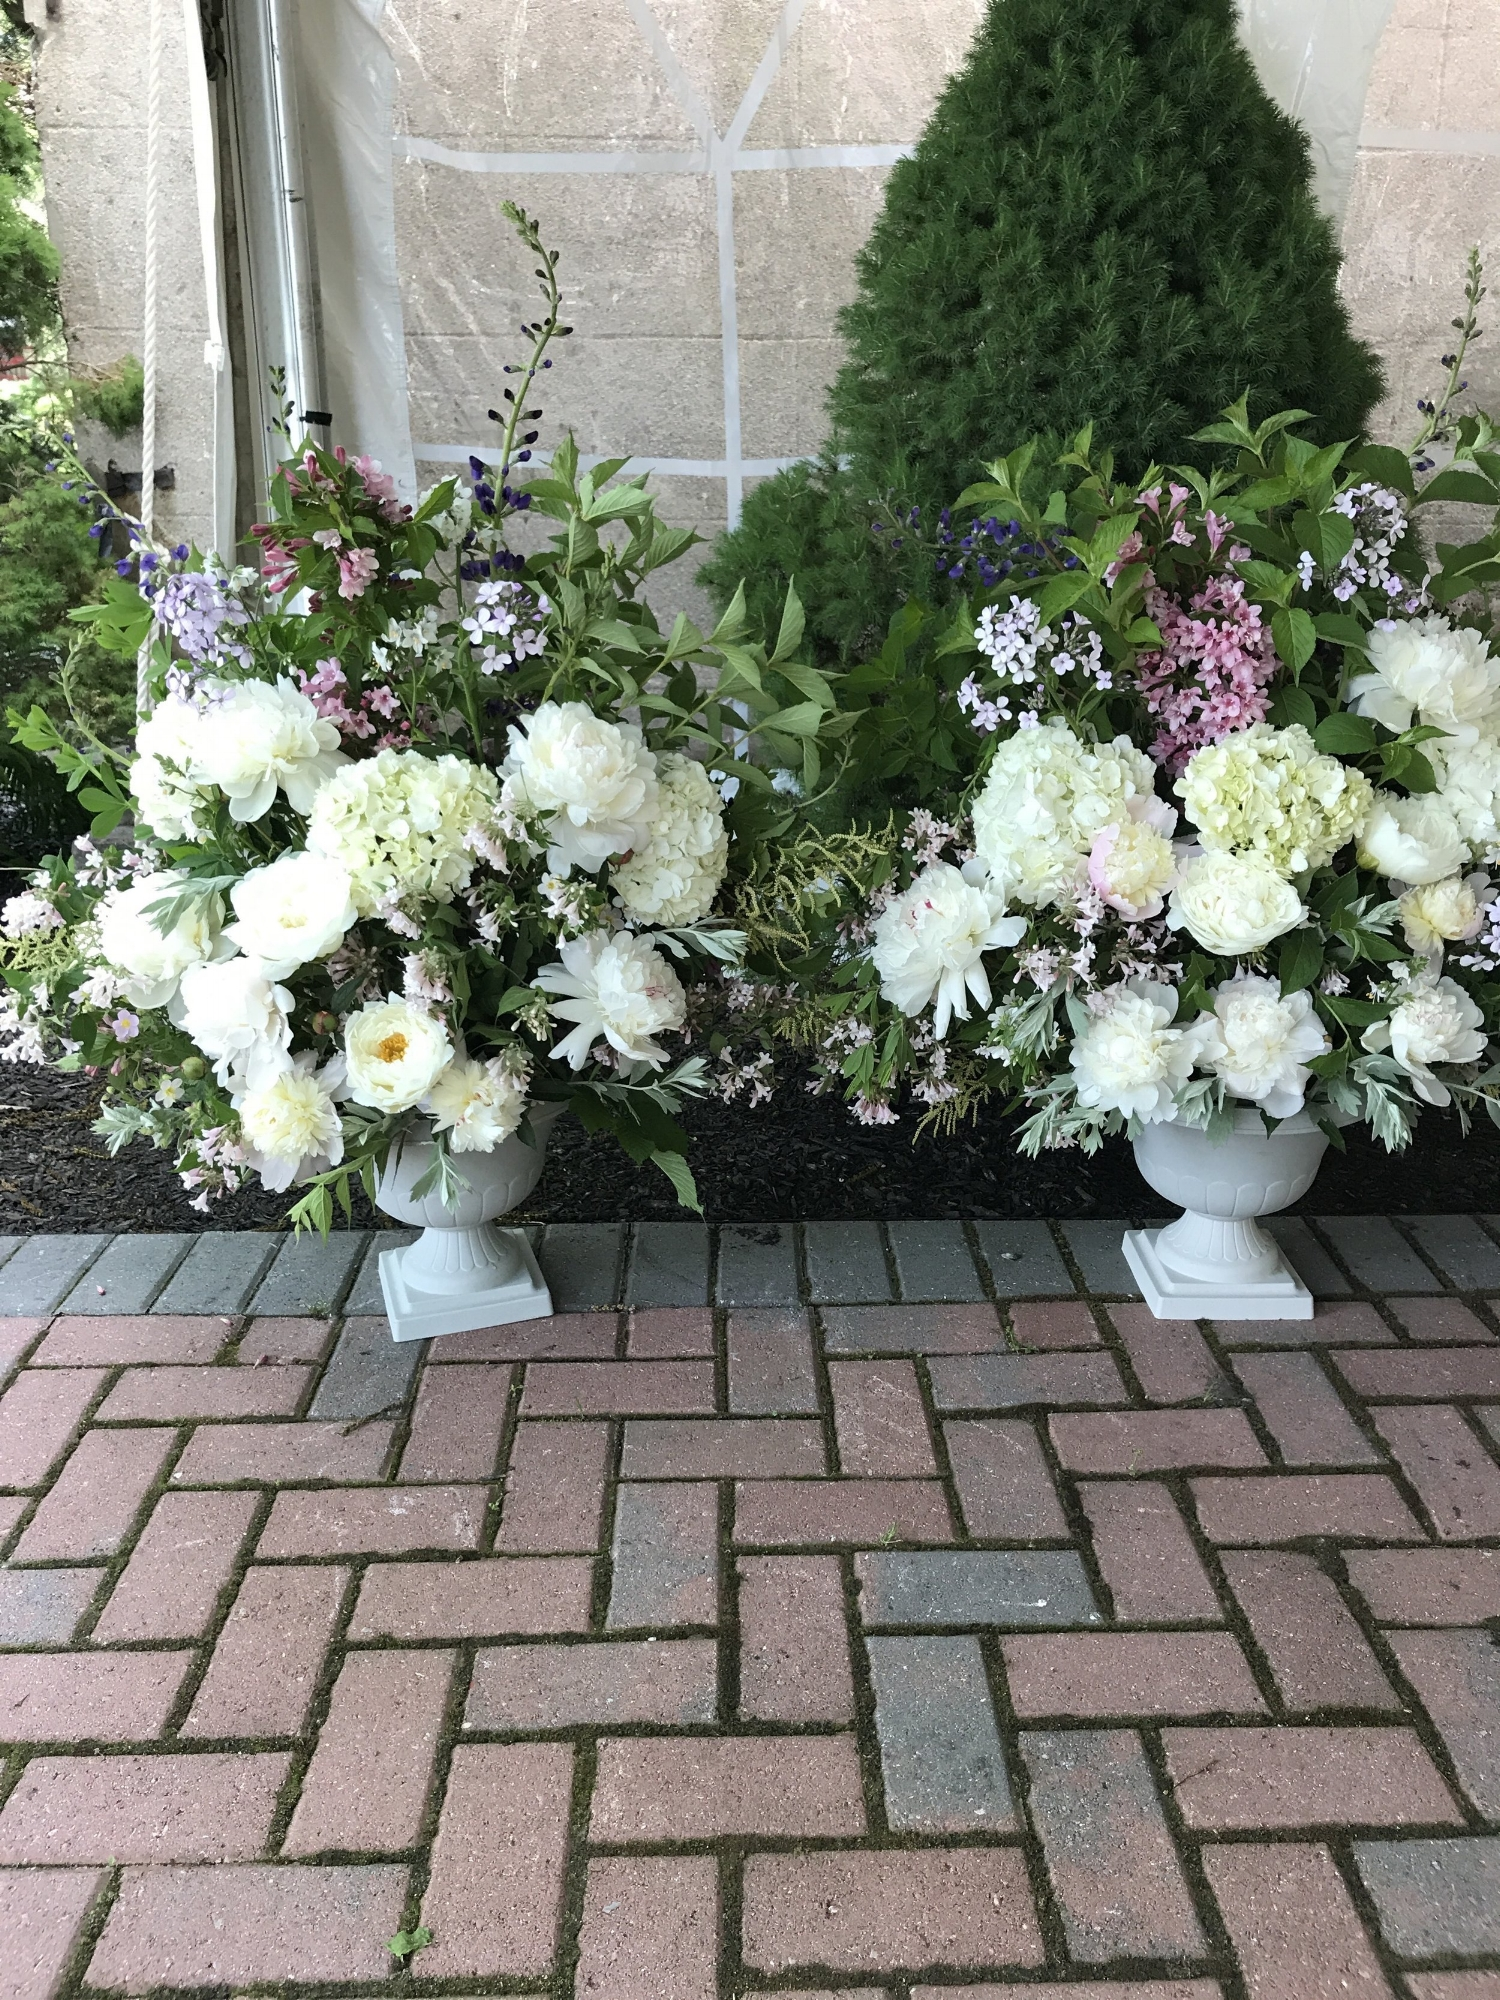 Early June Church Urns